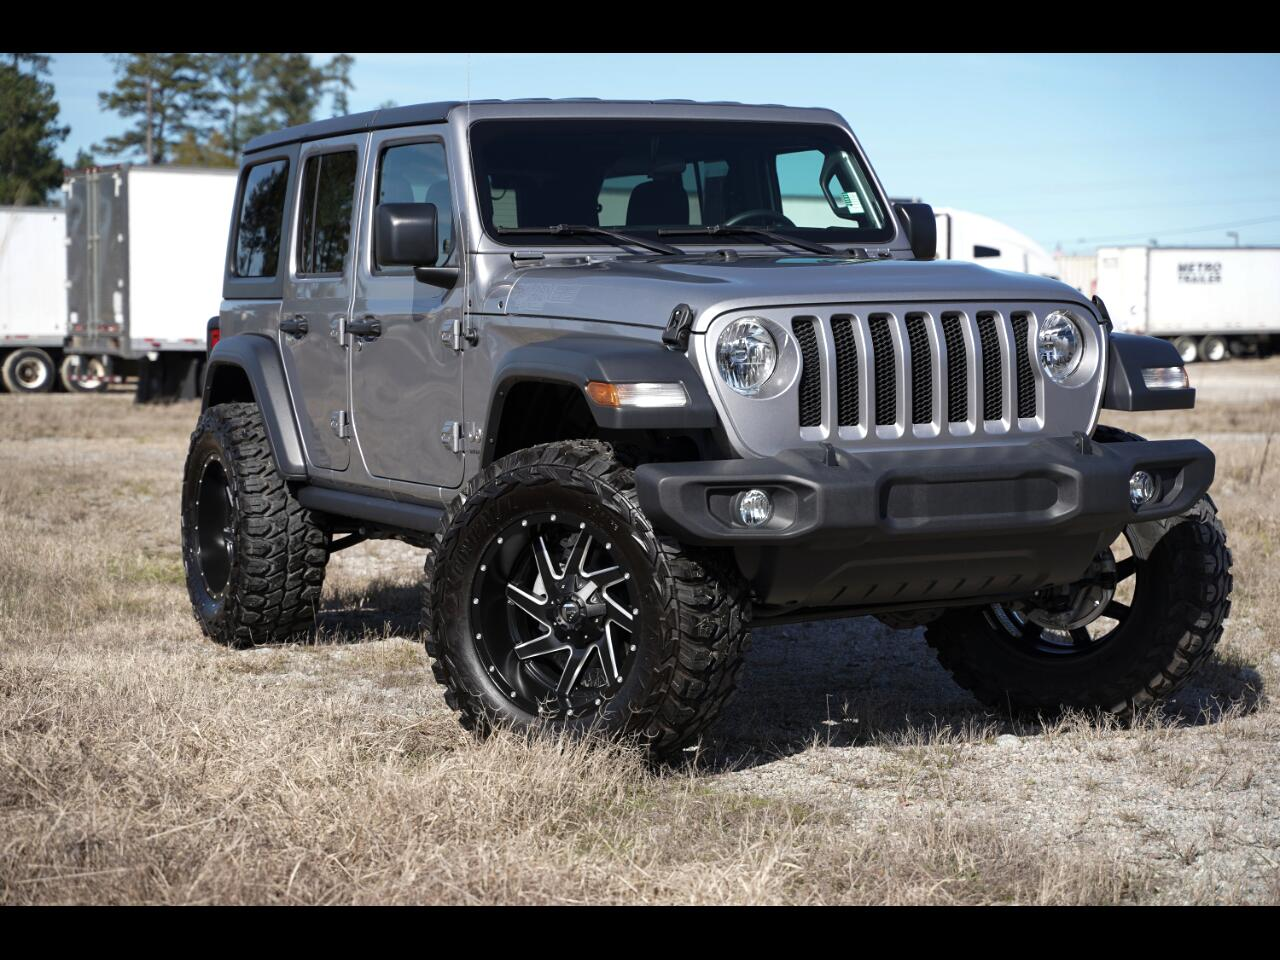 2018 Jeep Wrangler JL Unlimited Lifted 37's Only 200 Miles Hard Top!